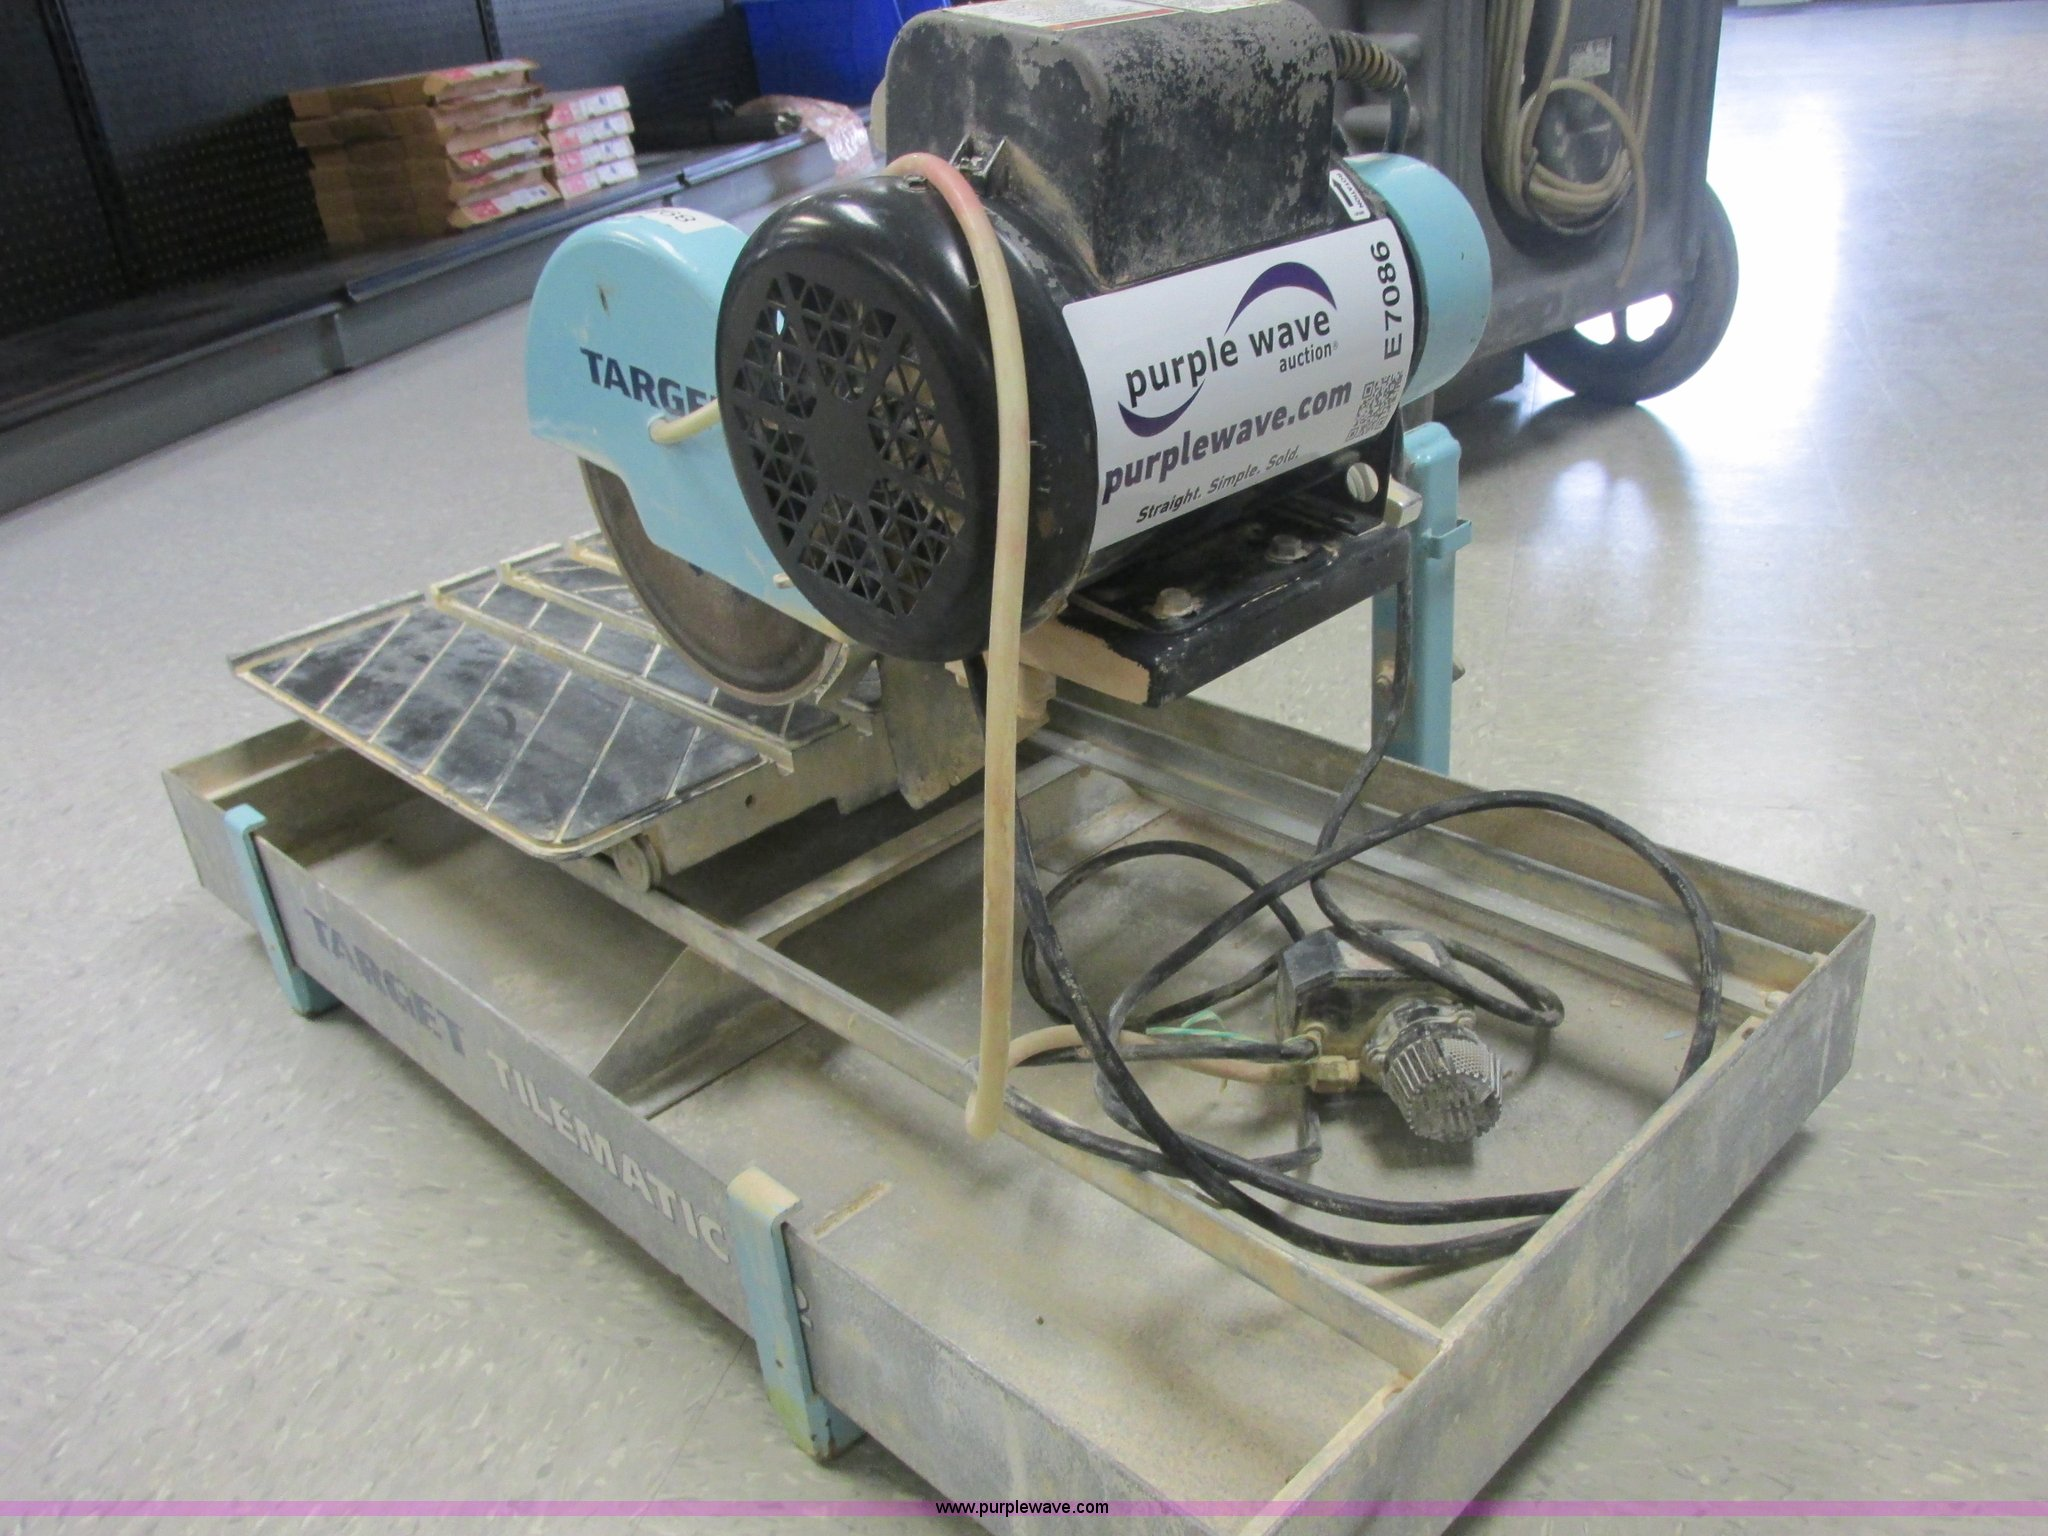 2006 Target Tilematic G2 Tile Saw Wet Saw Item E7086